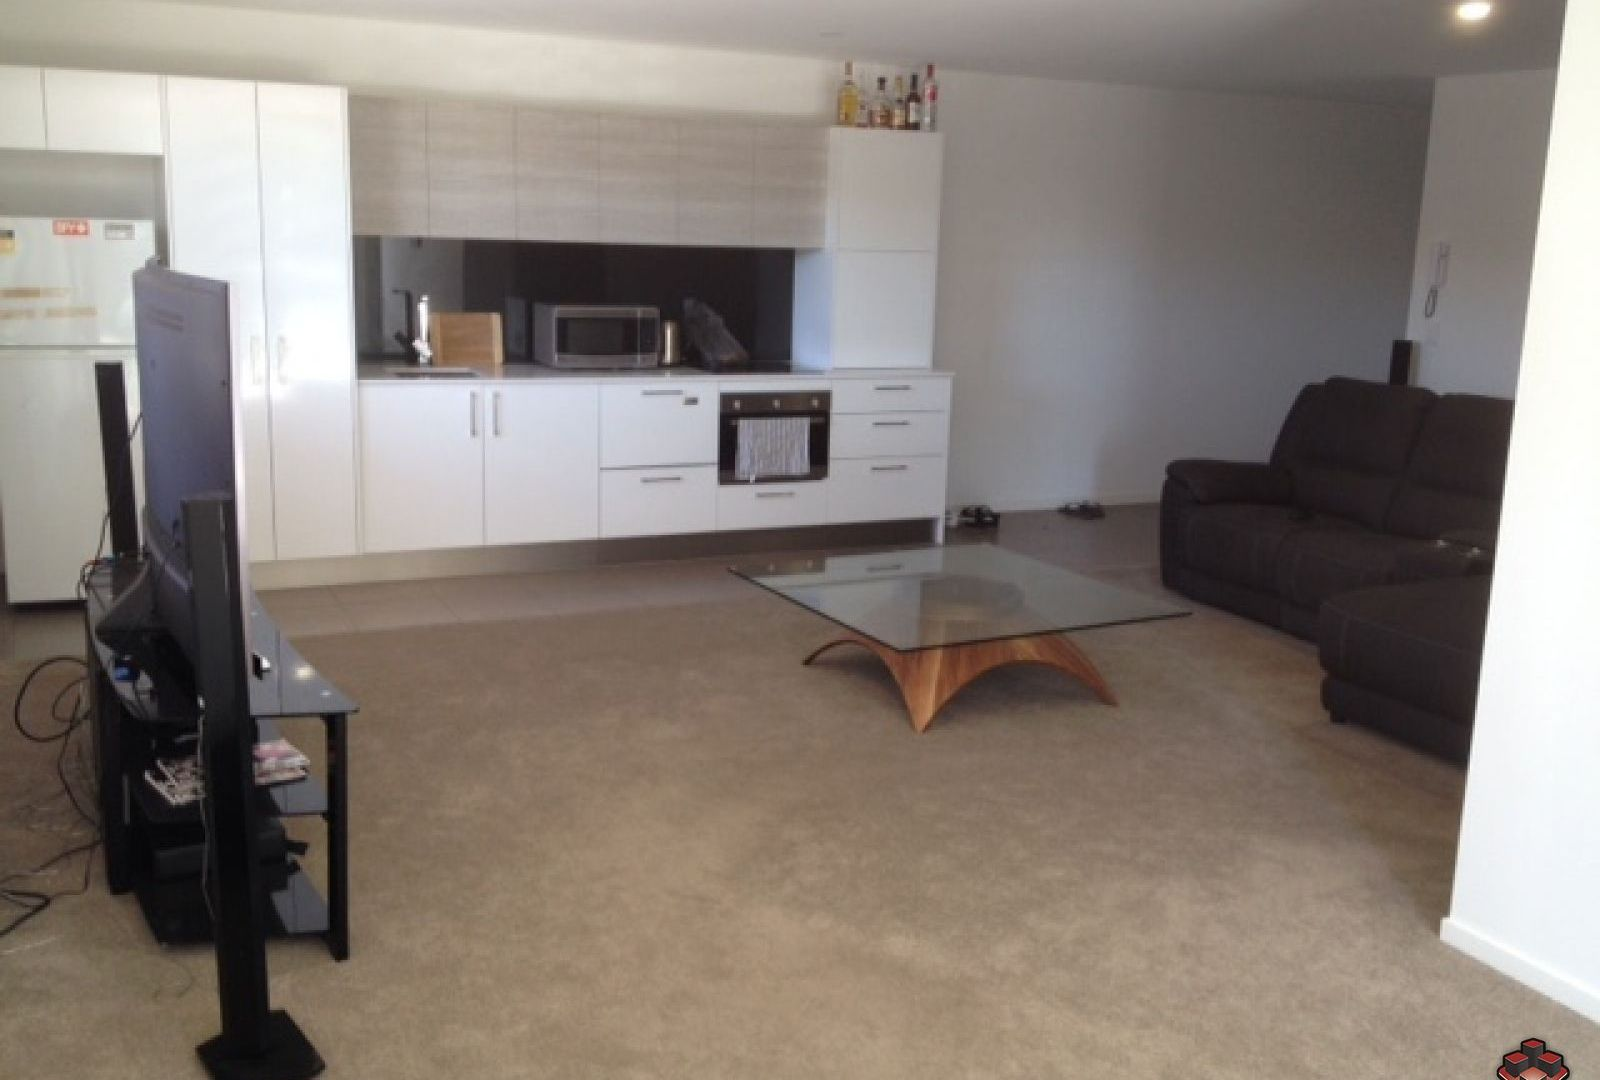 UNIT 1223 / 8 WATERFORD COURT, Bundall QLD 4217, Image 2